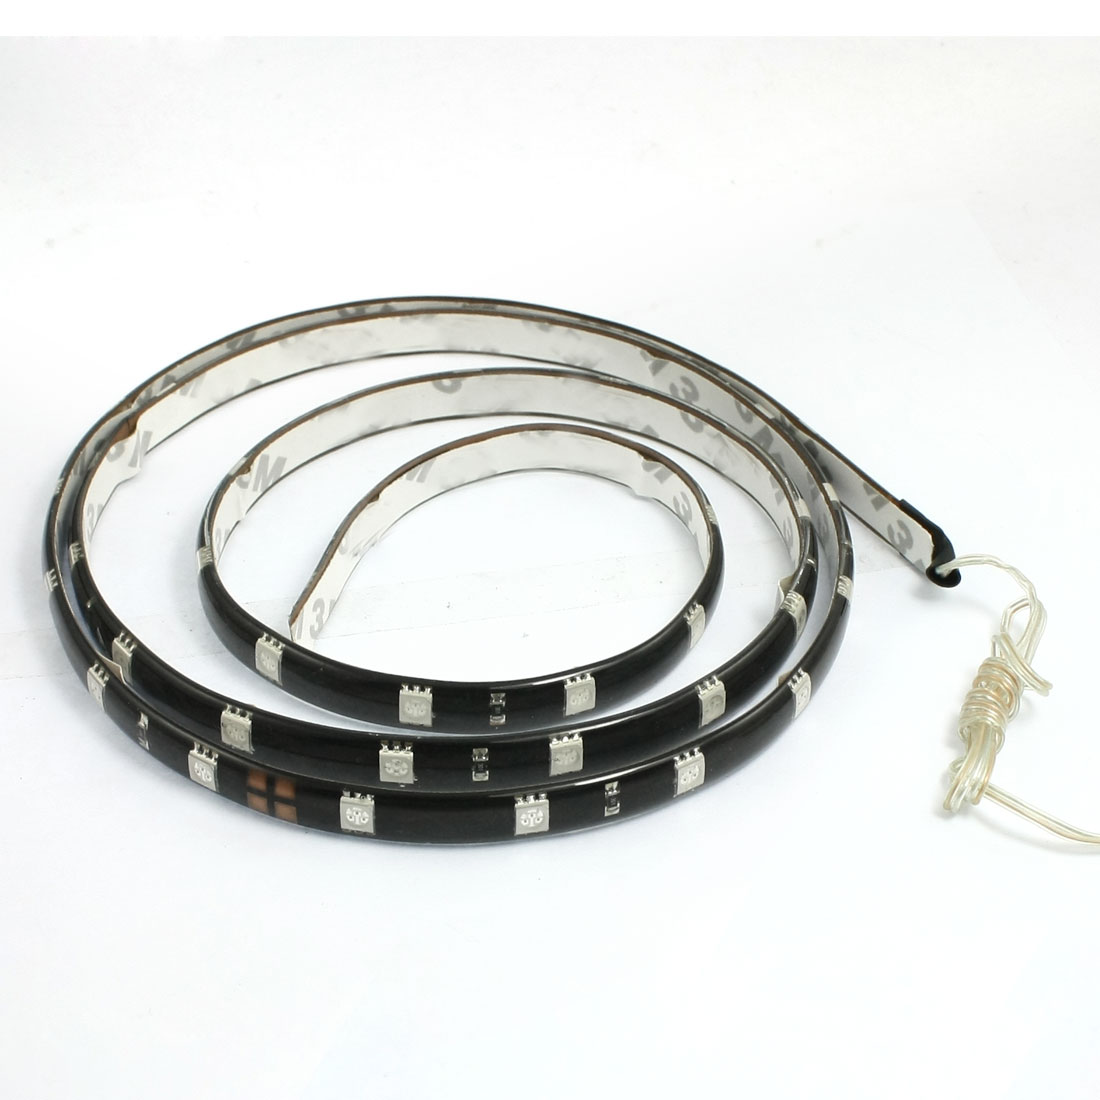 Car Auto DC 12V Red 5050 SMD 48-LED Strip Light Lamp 120cm